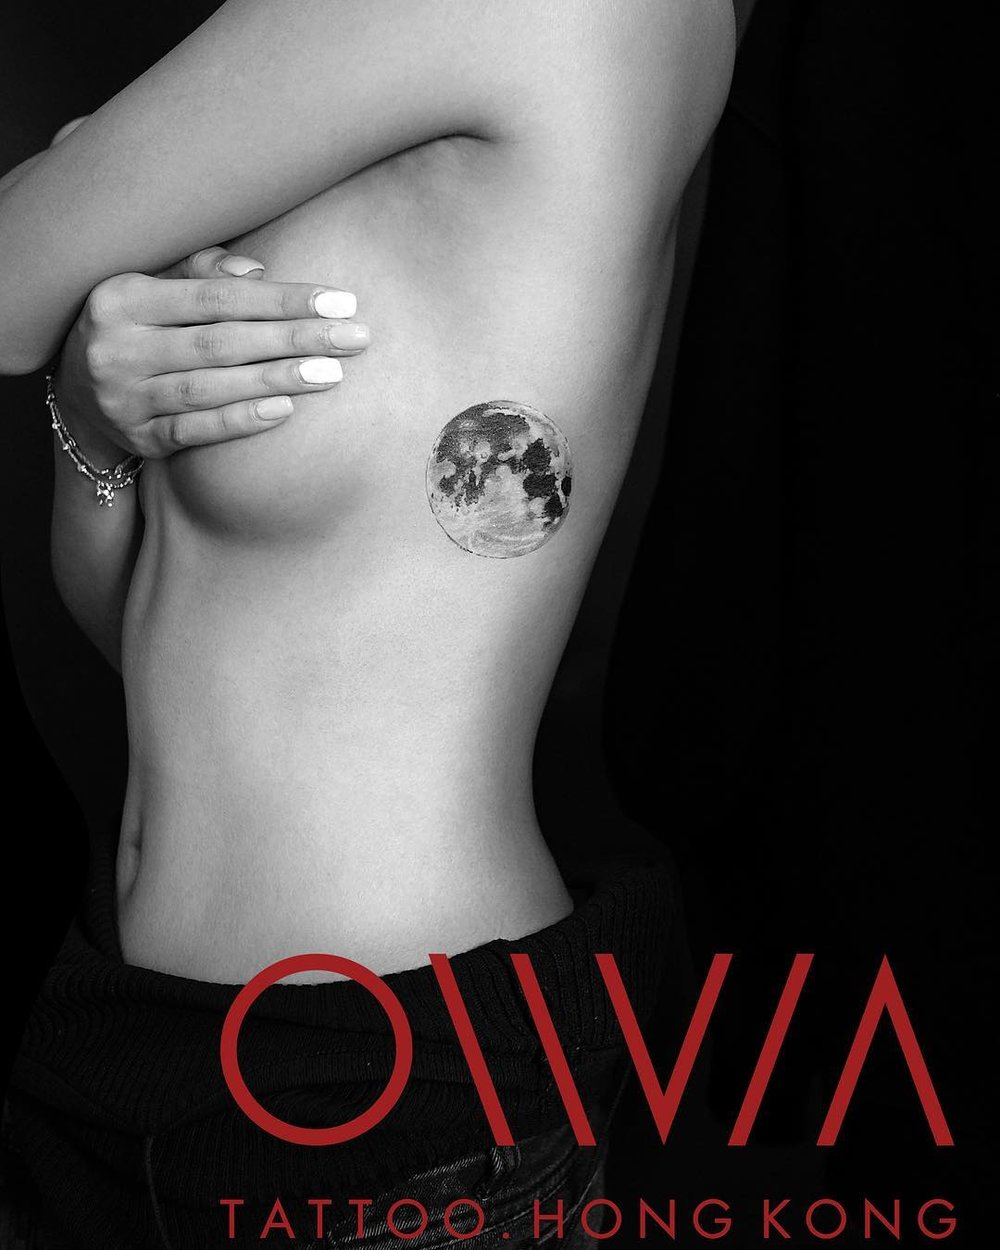 2018-fridays-tattoo-hong-kong-olivia-moon.jpg